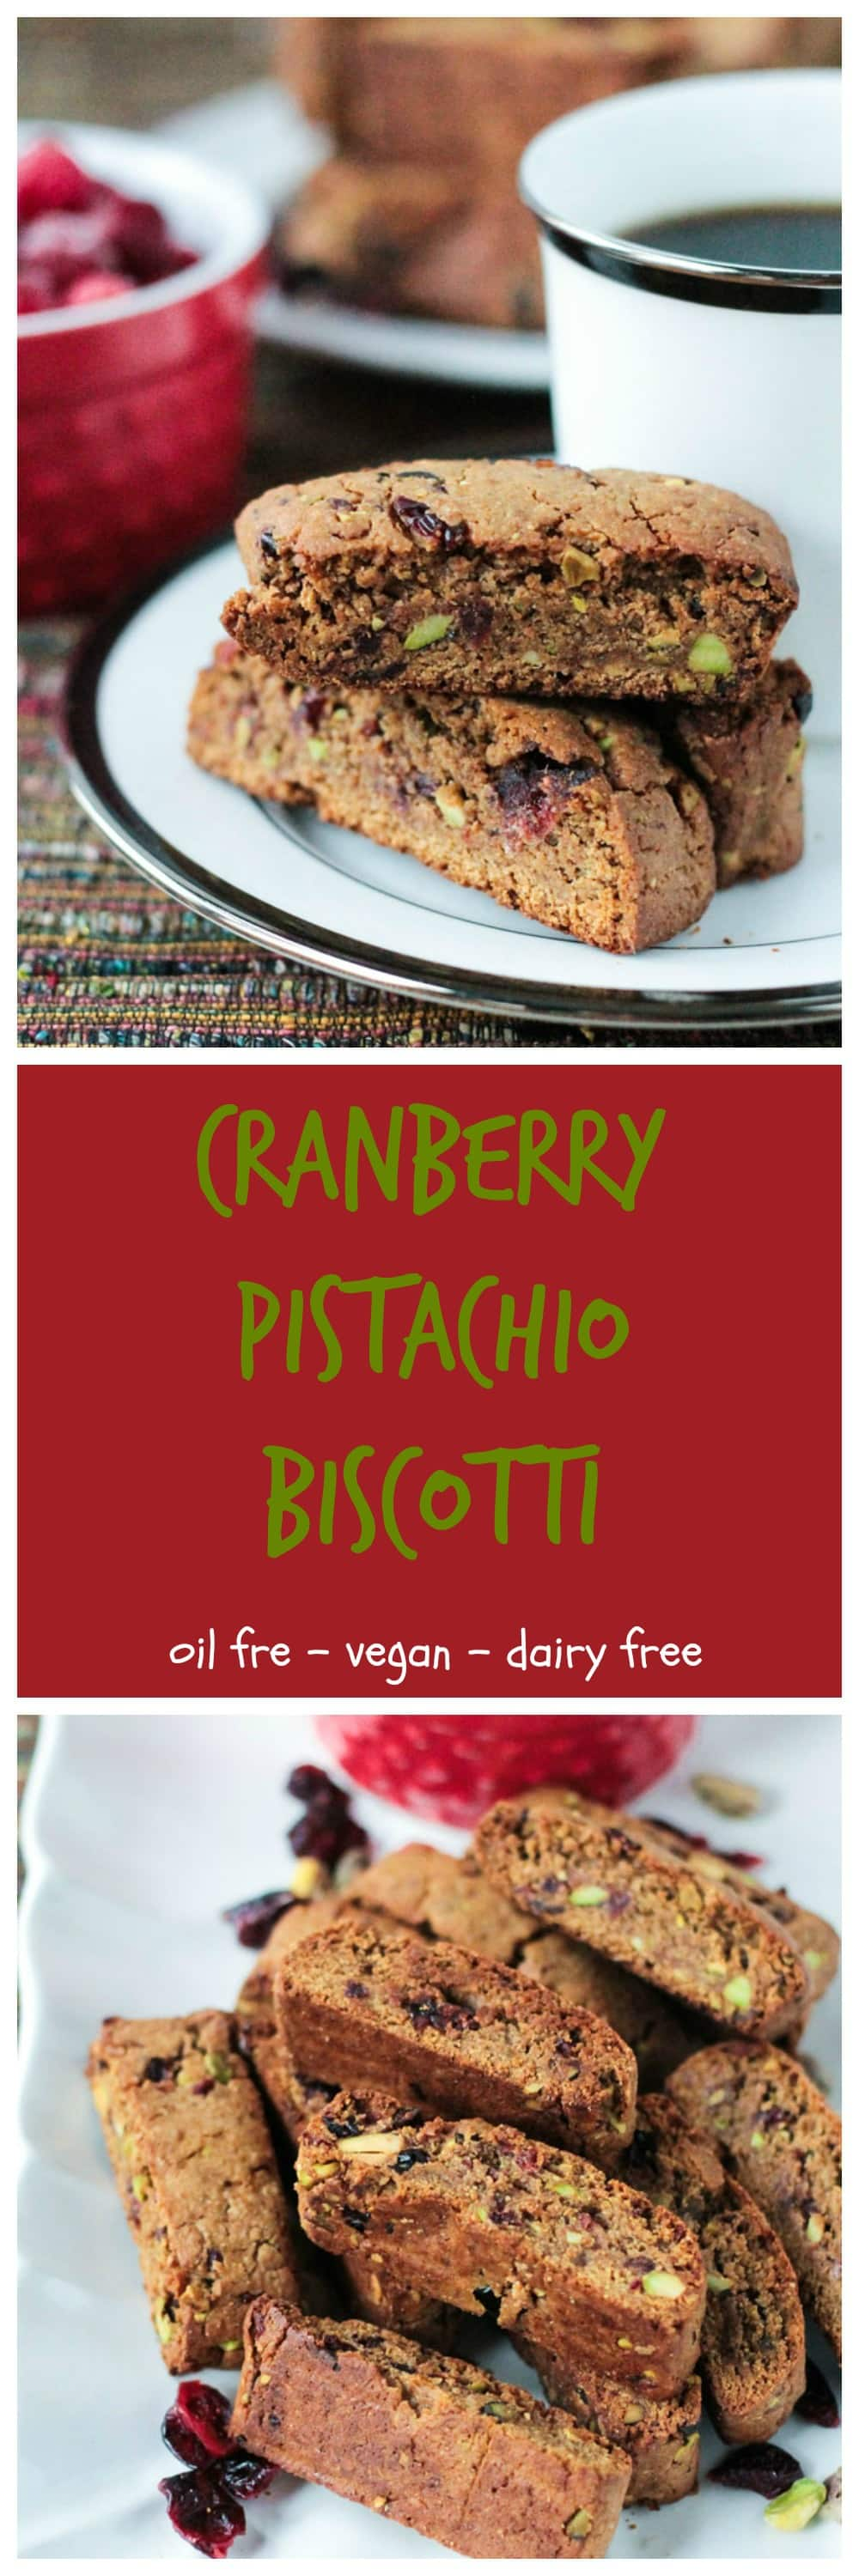 Whole Wheat Cranberry Pistachio Vegan Biscotti - This recipe is so easy! A festive vegan biscotti with NO oil, NO butter, NO dairy, NO refined sugar...only good for you ingredients so you won't feel guilty reaching for more than one! #vegan #cranberries #holiday #christmas #biscotti #cookies #pistachios #easy #dairyfree #oilfree